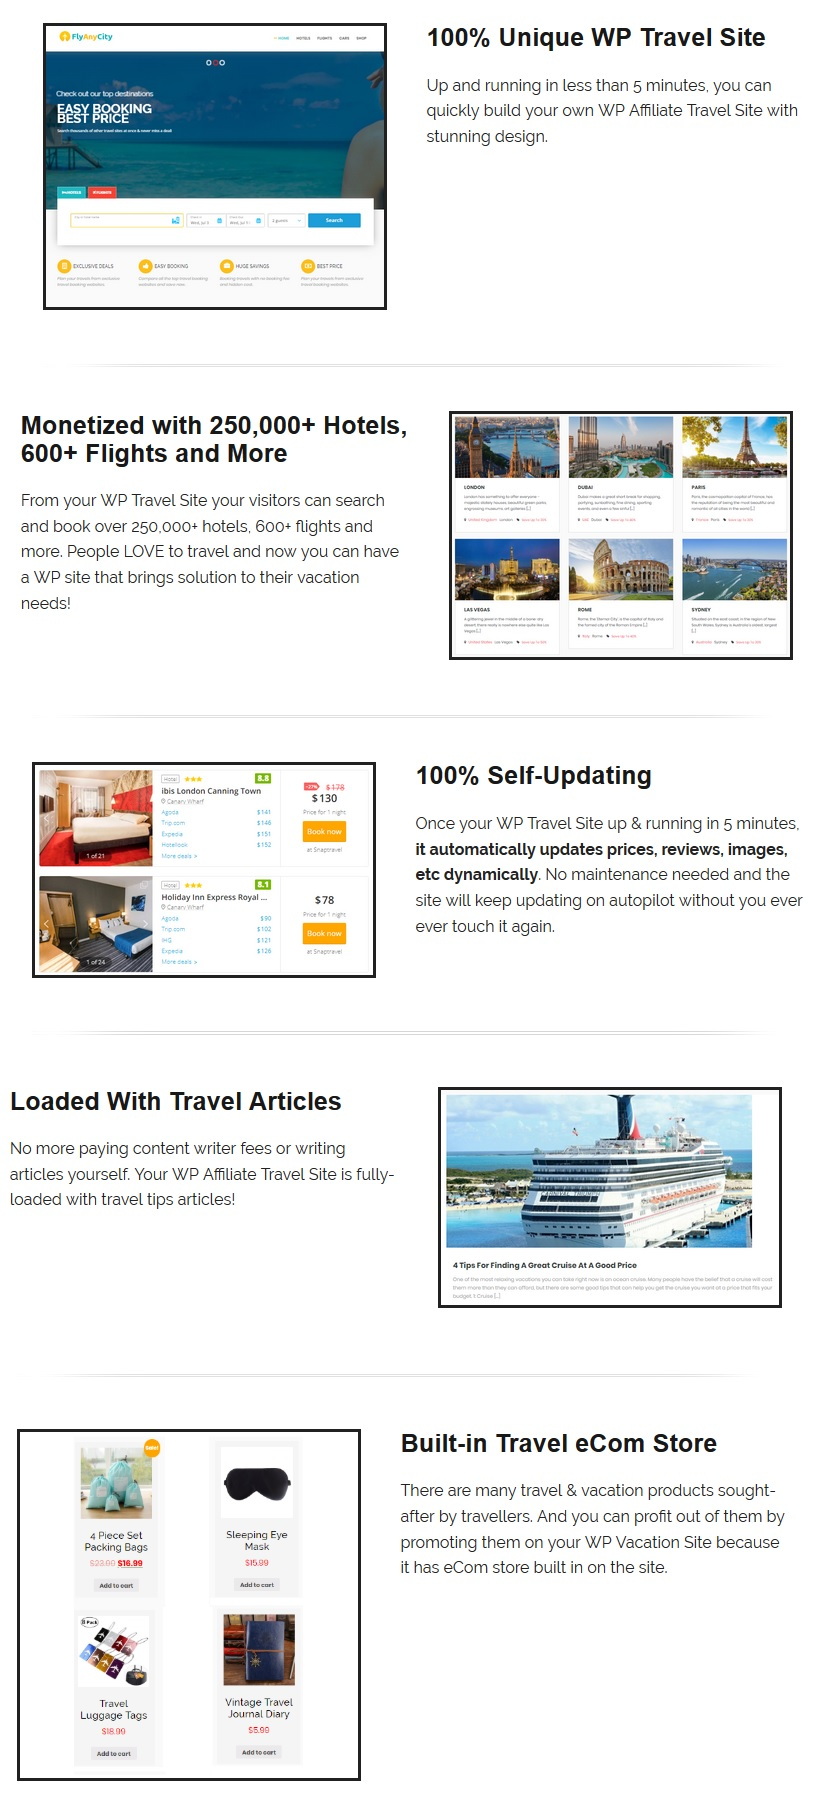 Image - Travel Site Features